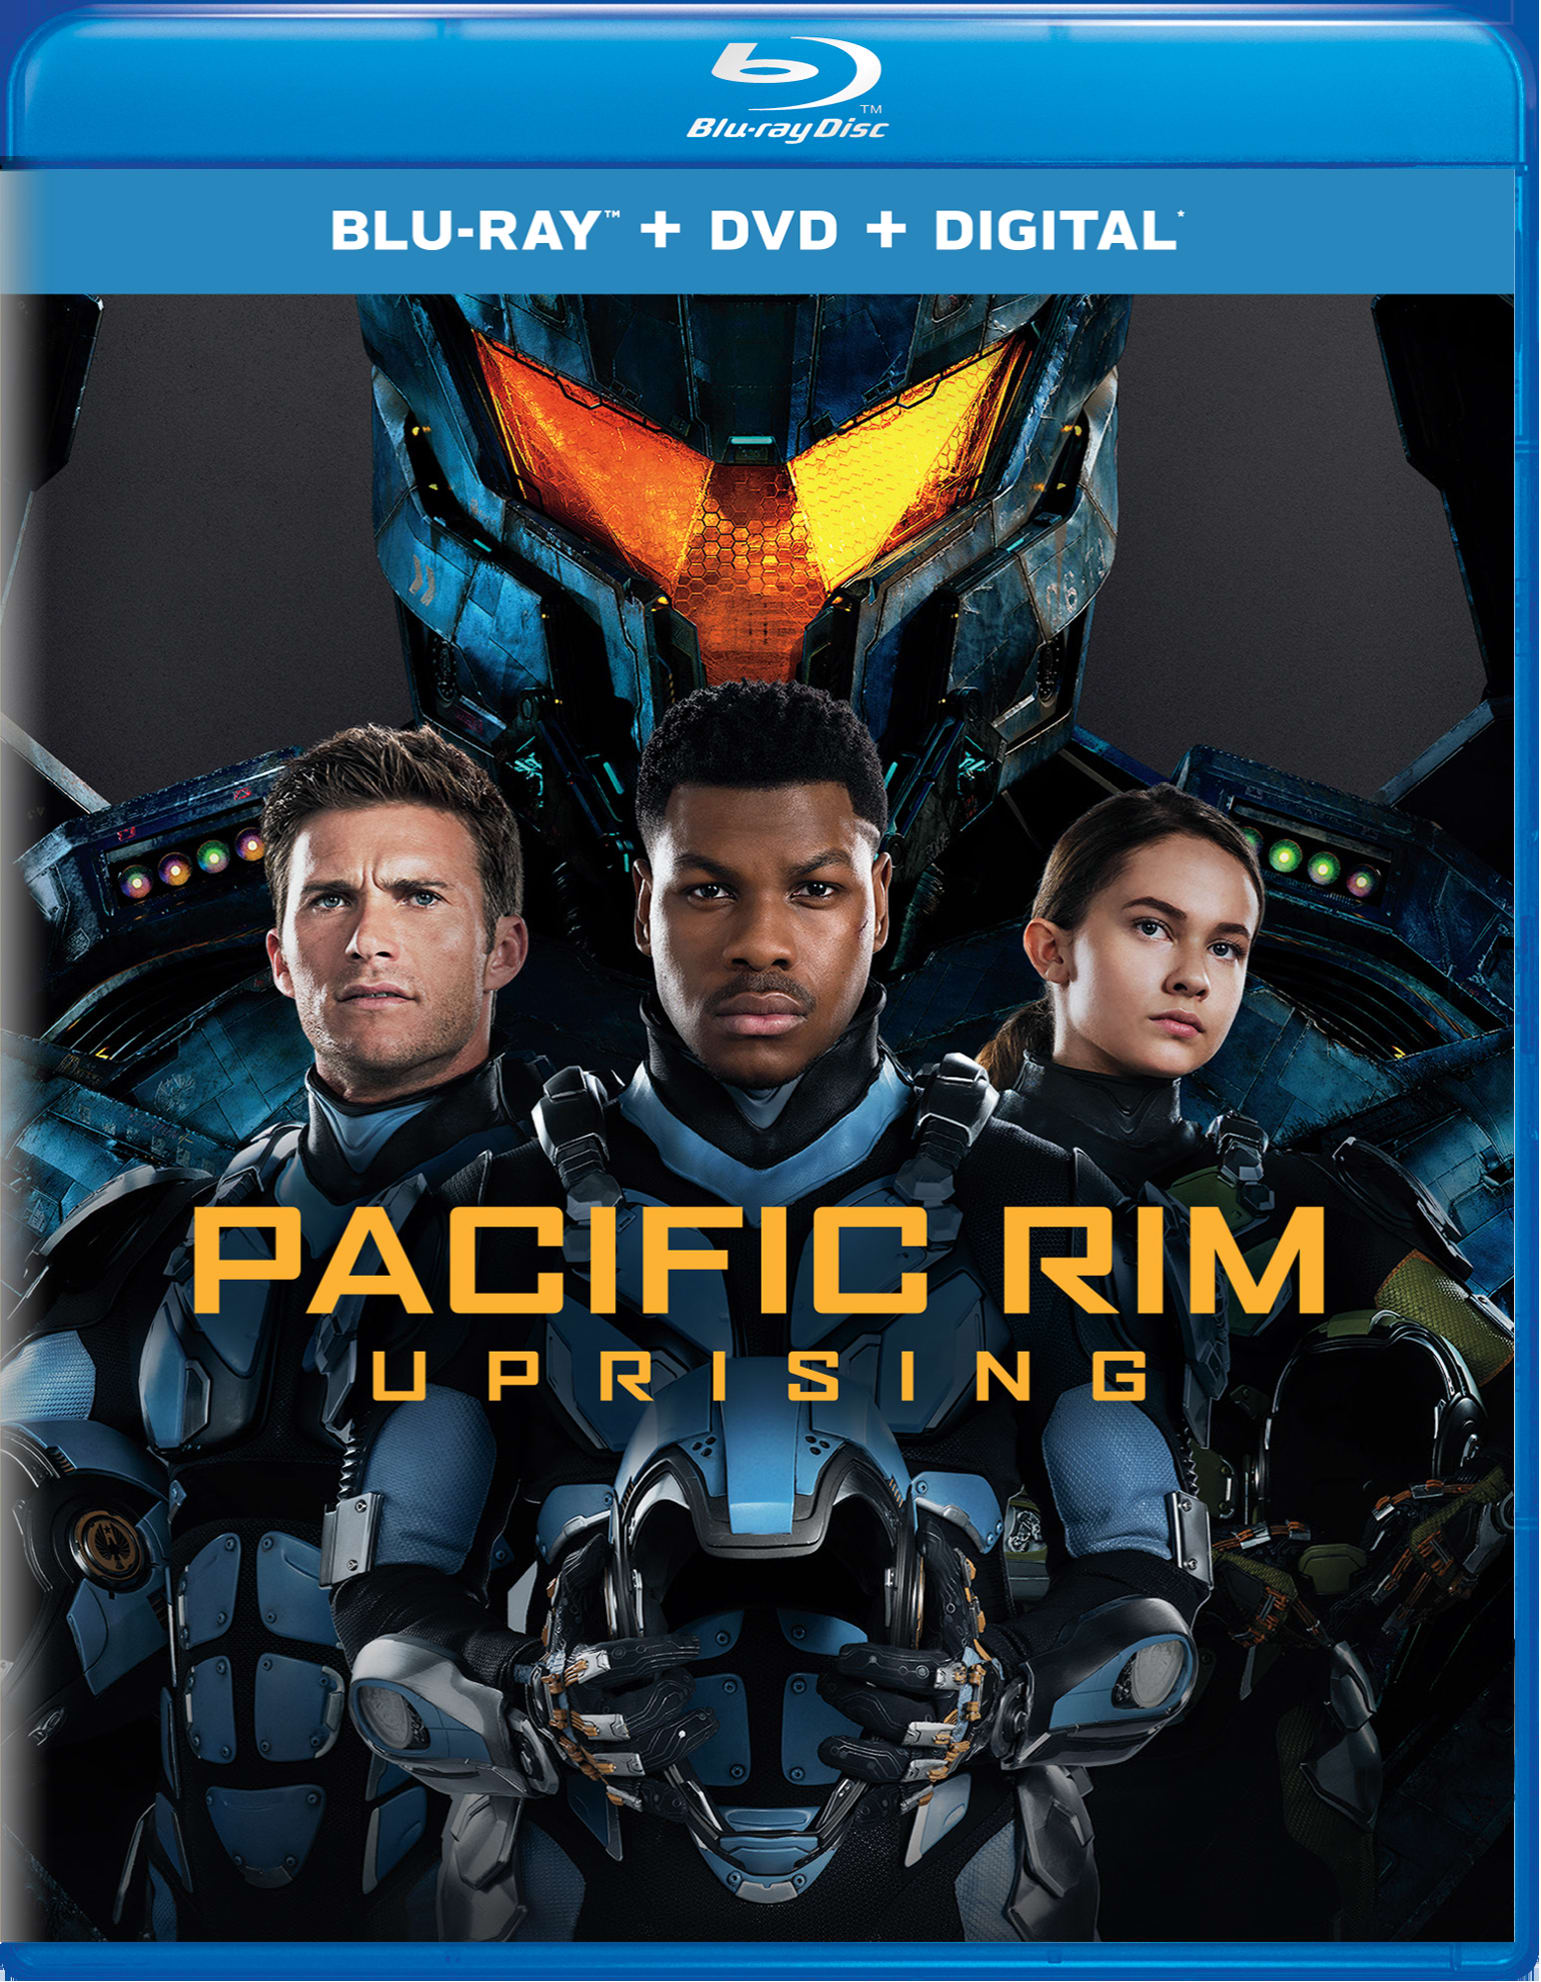 Pacific Rim - Uprising (DVD + Digital) [Blu-ray]